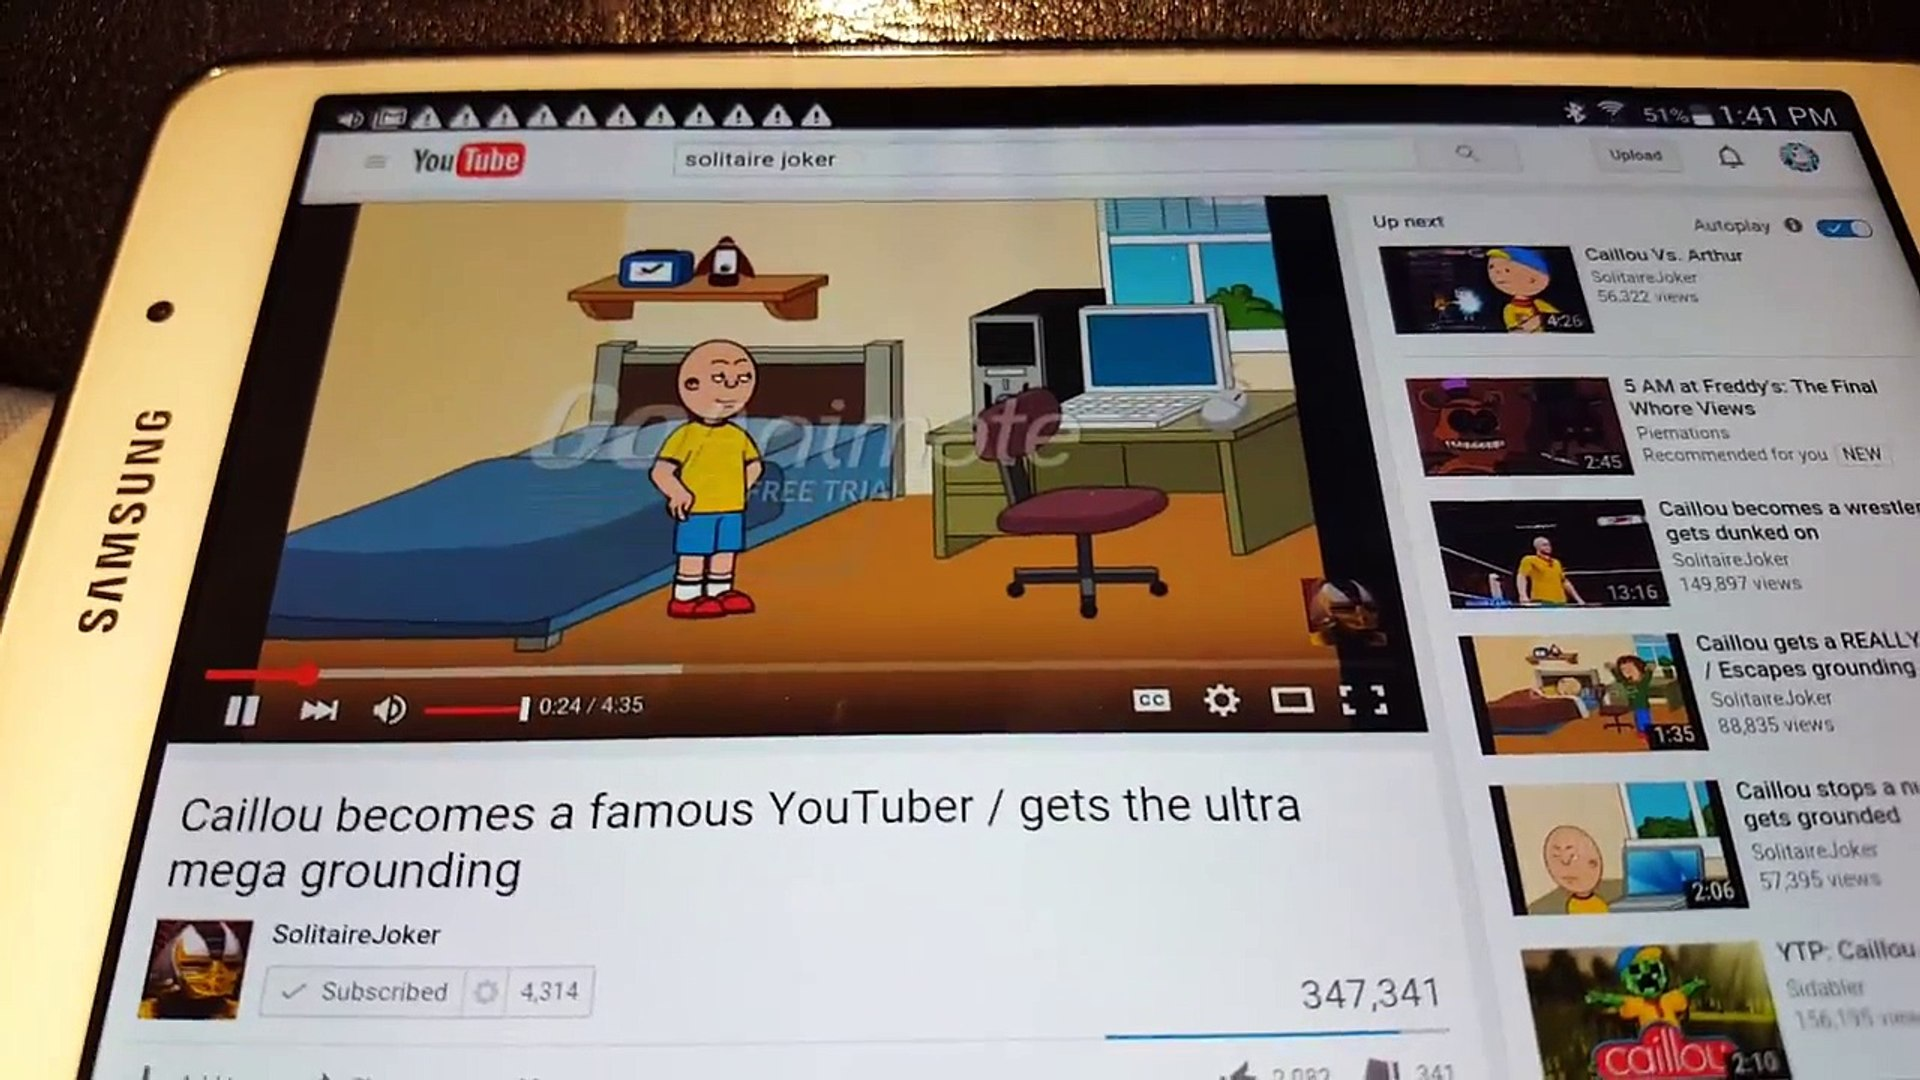 My React Episode #87: Caillou becomes a famous YouTuber/Gets Ultra Mega  Grounding